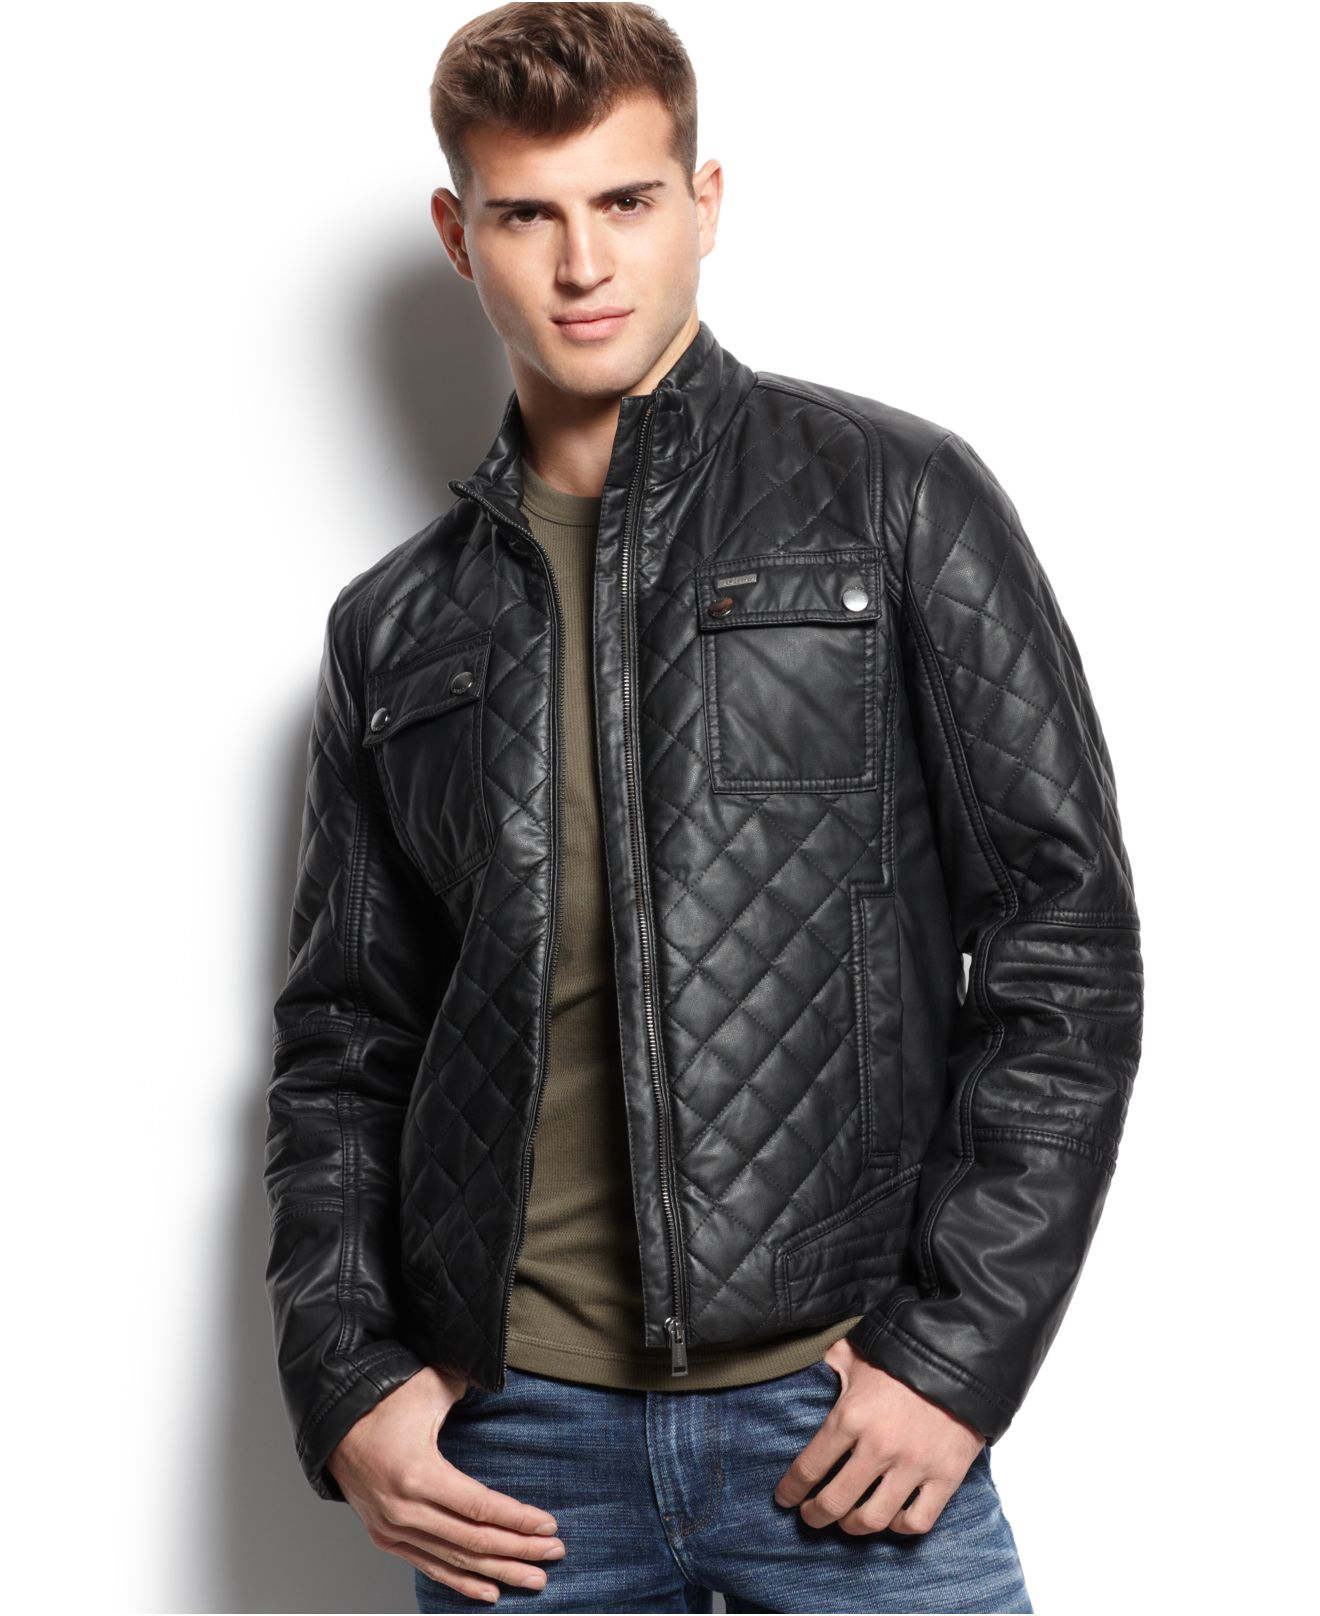 e837e2fa4f73 Lyst - Guess Diamond Quilted Jacket in Black for Men